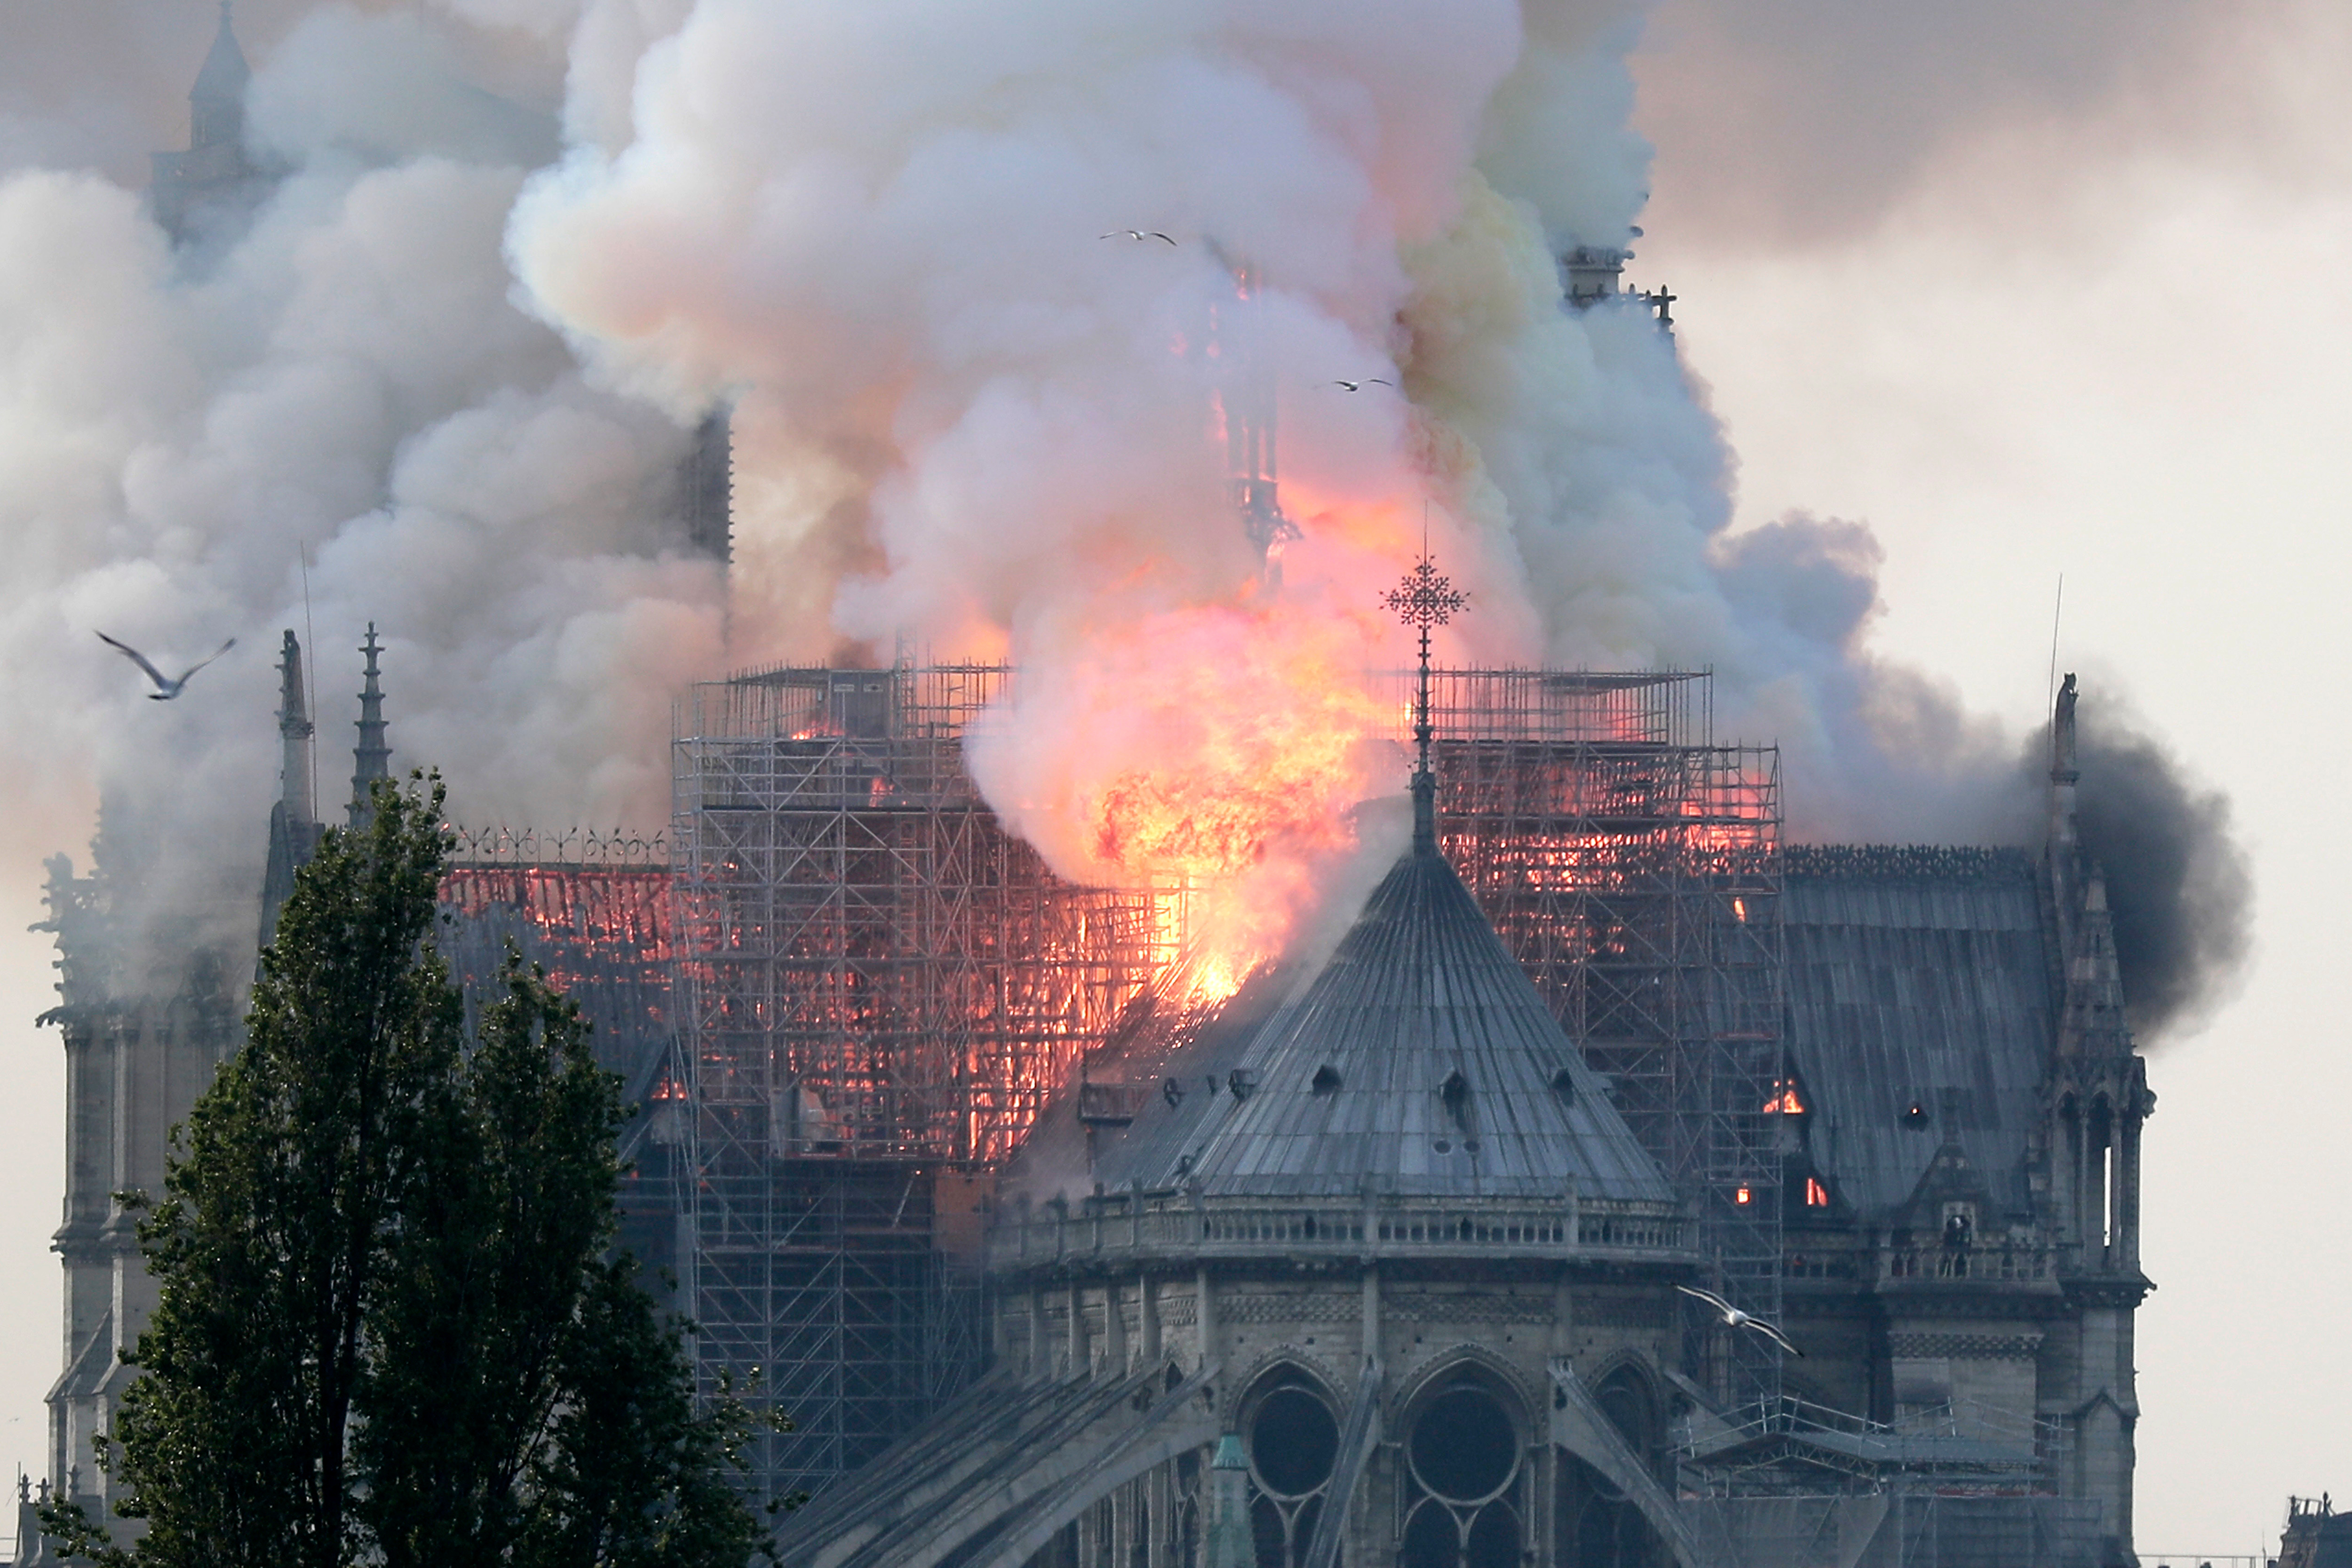 Notre-Dame Cathedral in Paris Catches Fire